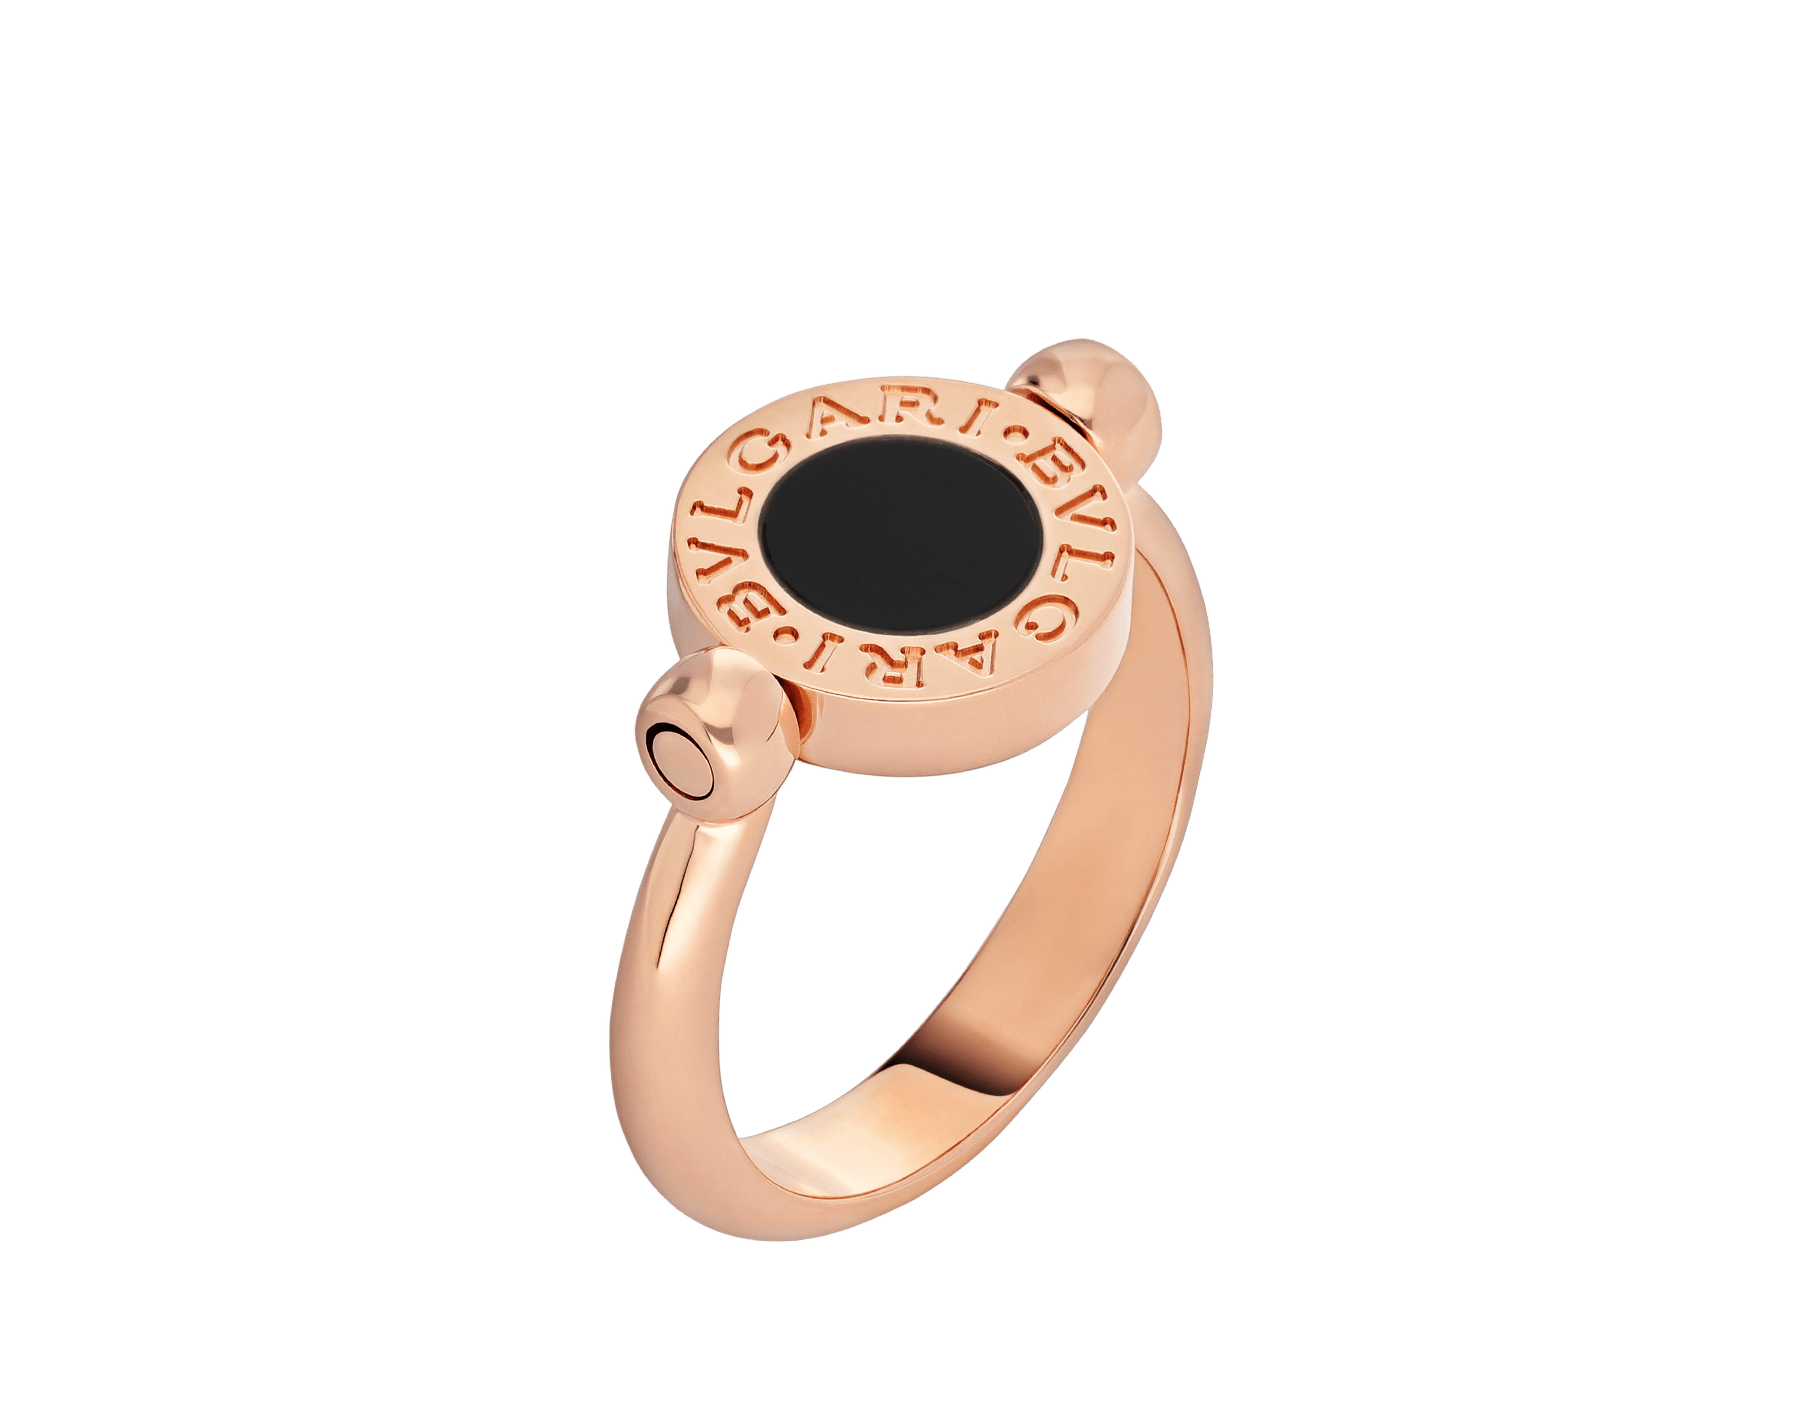 BVLGARI BVLGARI 18 kt rose gold flip ring set with mother-of-pearl and onyx AN856192 image 1